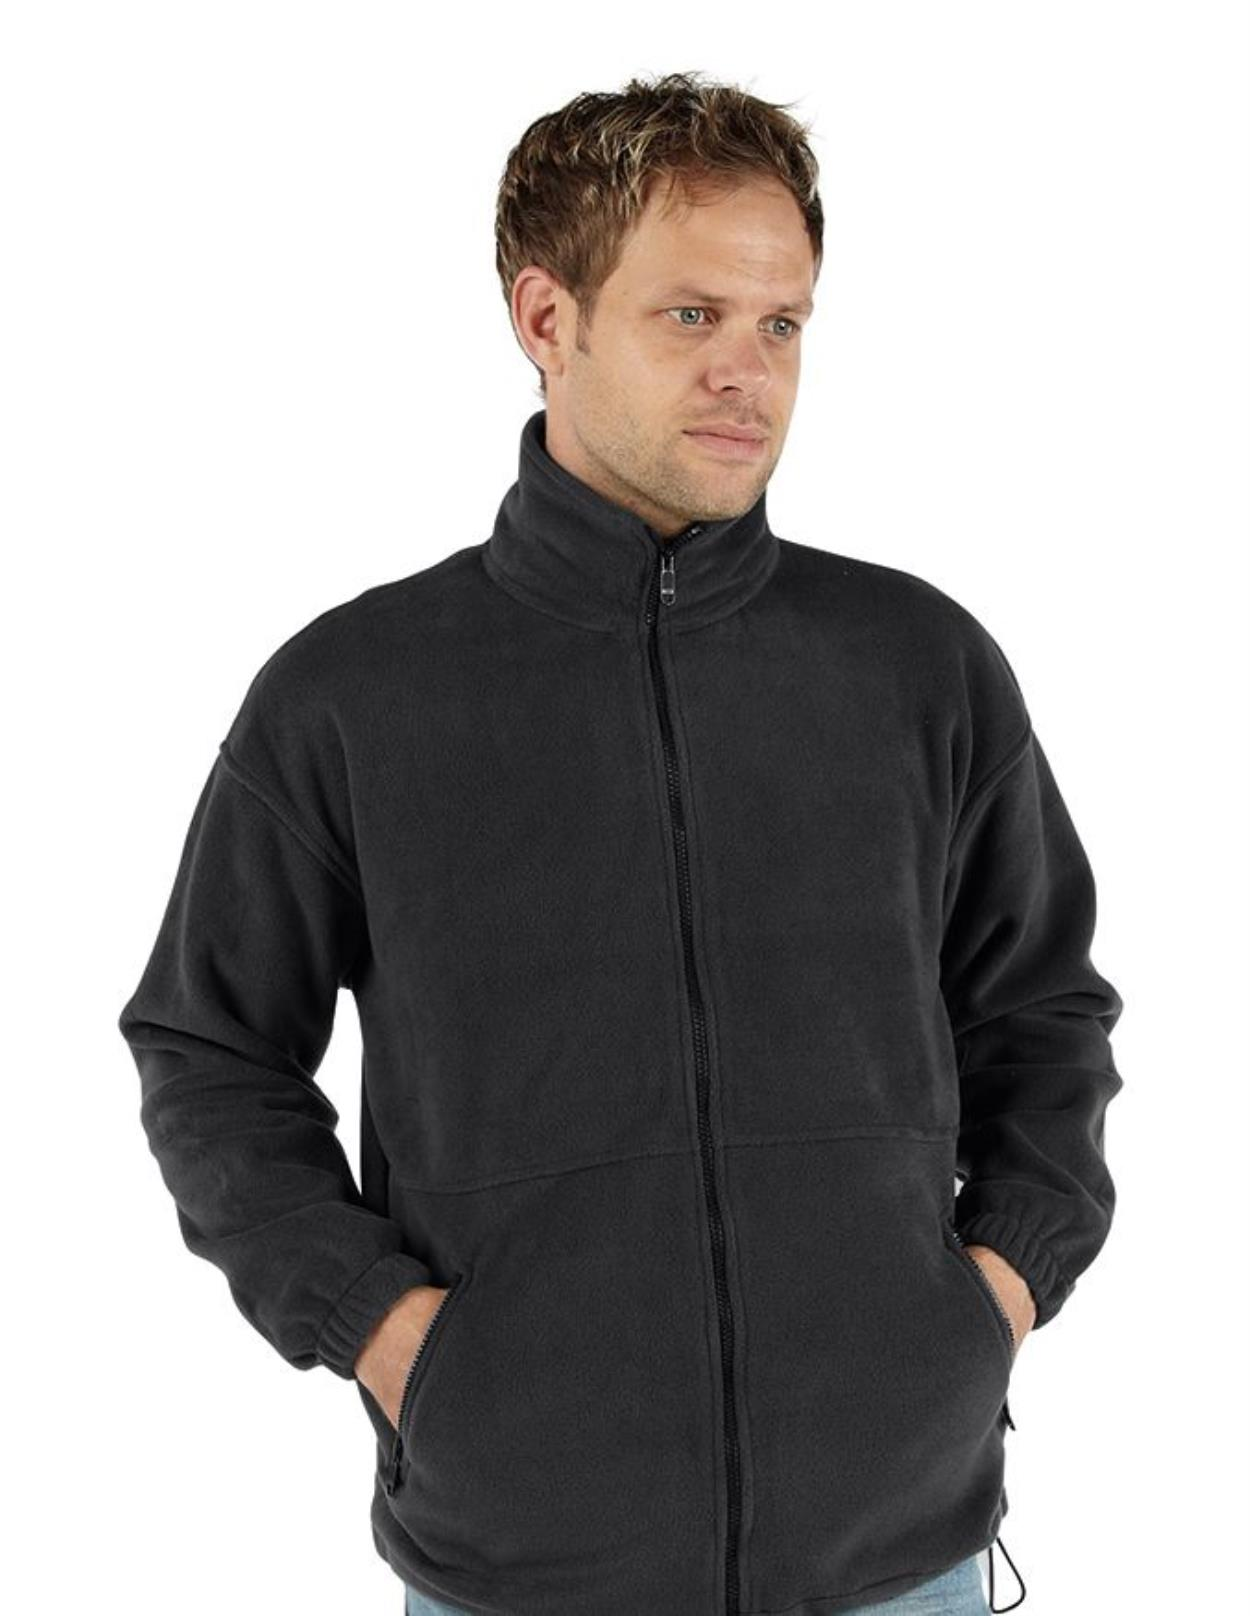 RK31 - RK31- POLARWARE FULL ZIP FLEECE